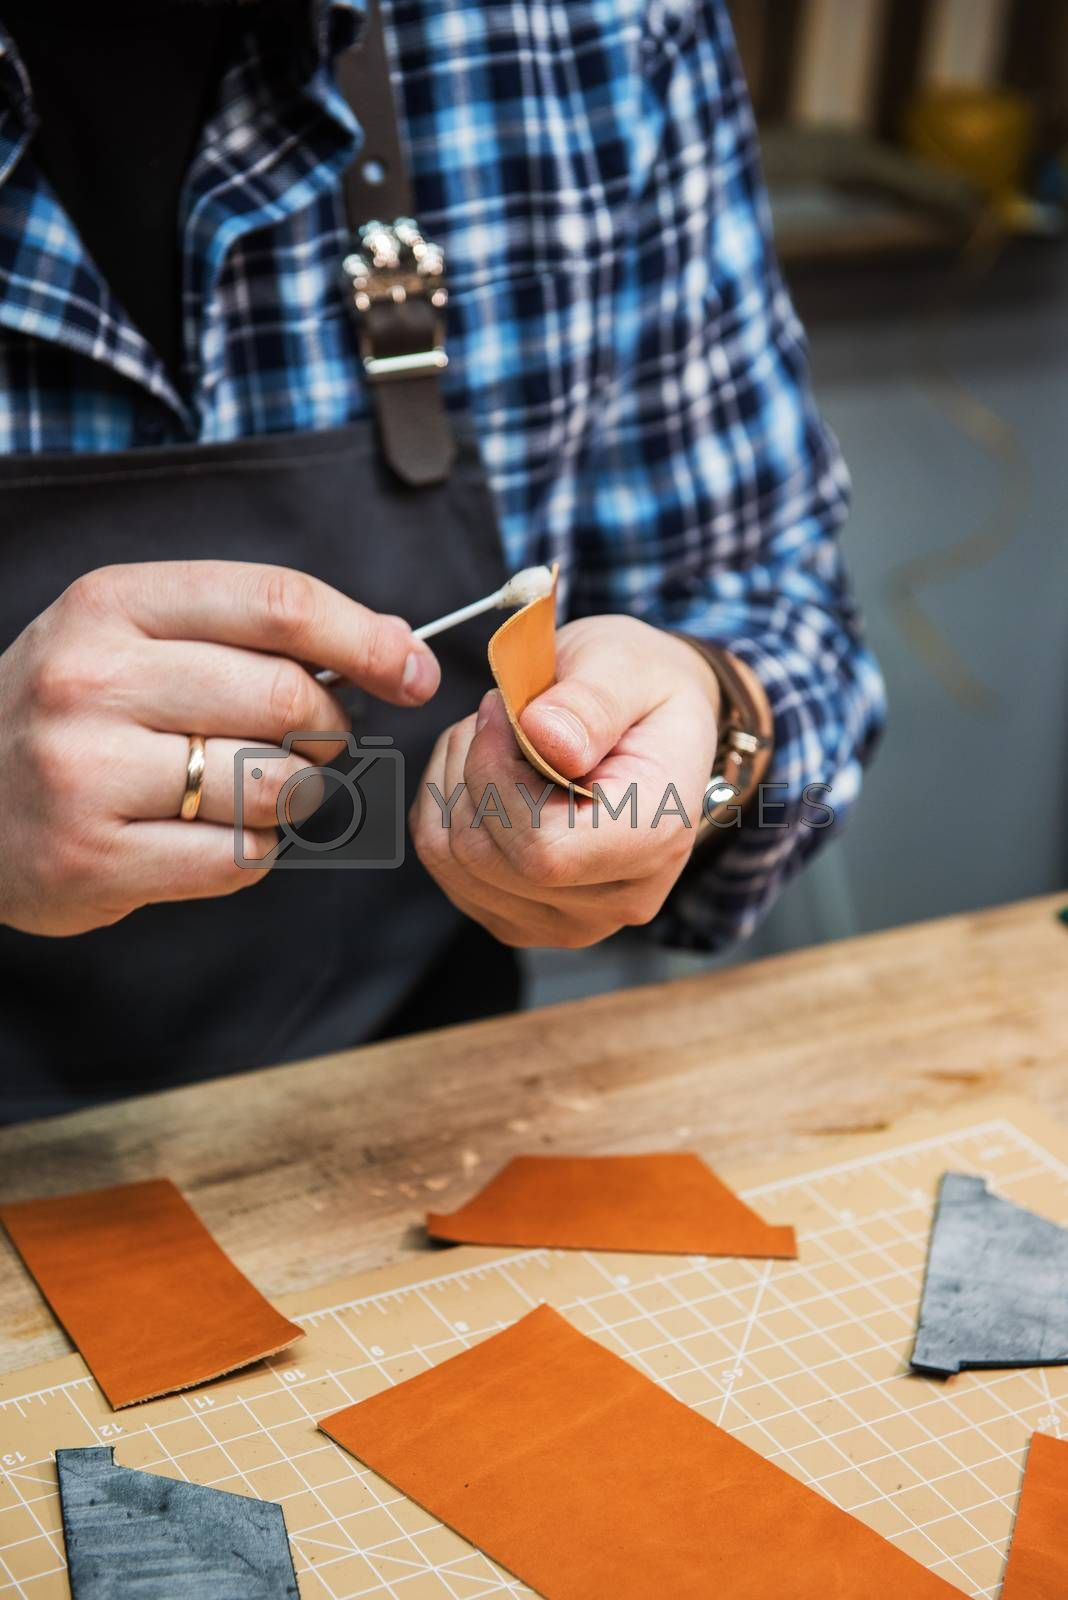 Man making leather wallet at a workshop. Concept of handmade craft production of leather goods.